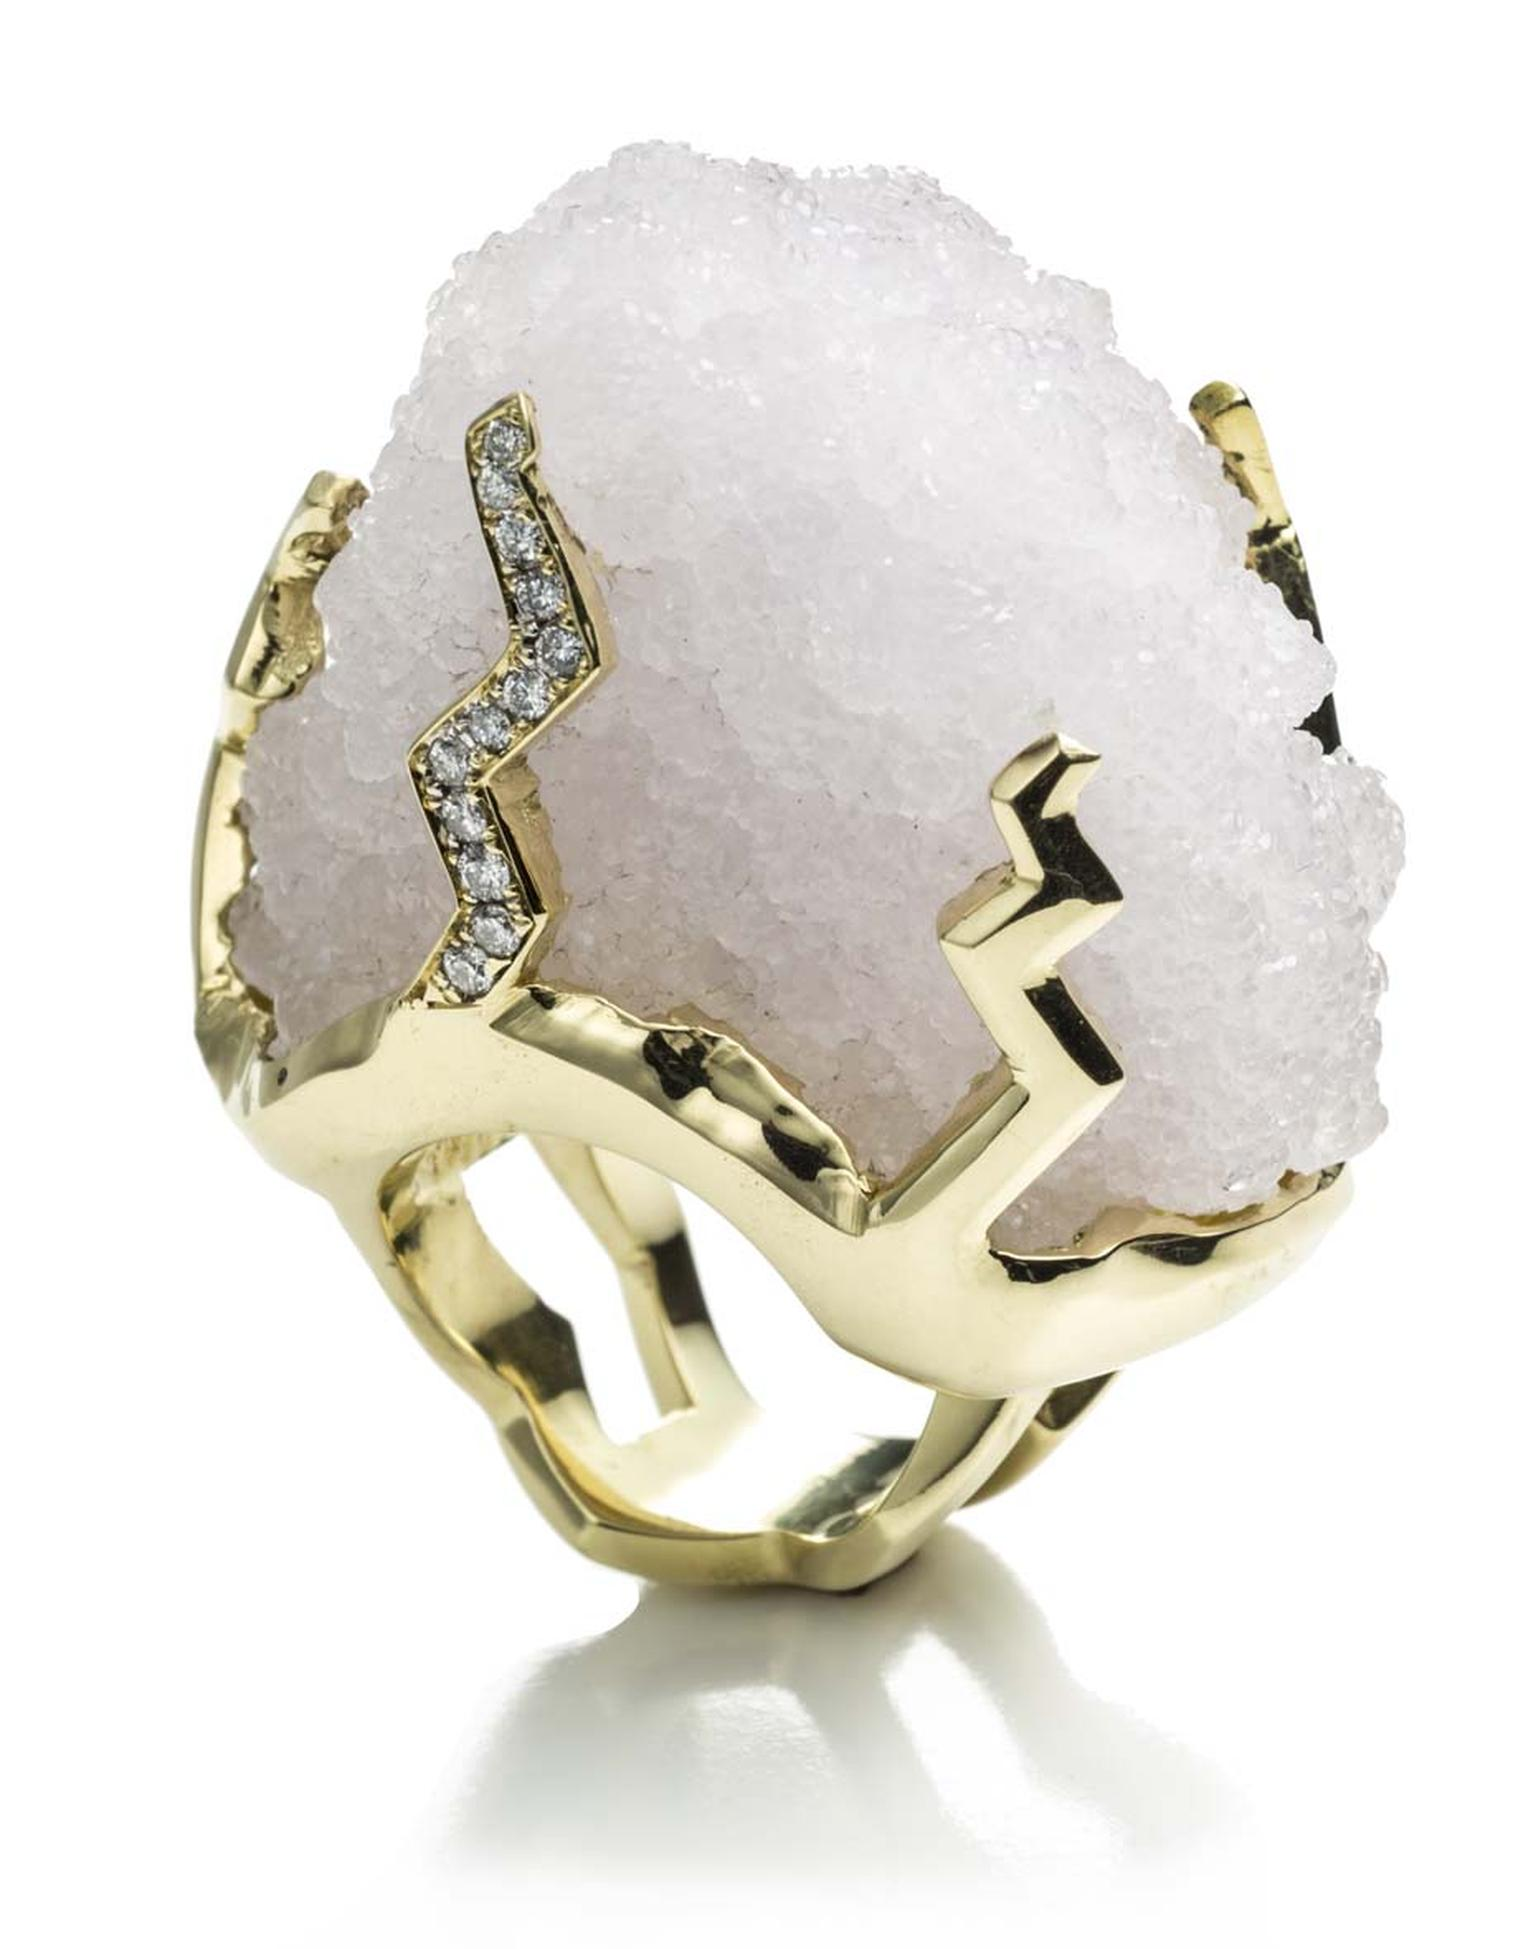 Kara Ross Petra raw white quartz ring with diamonds set in gold